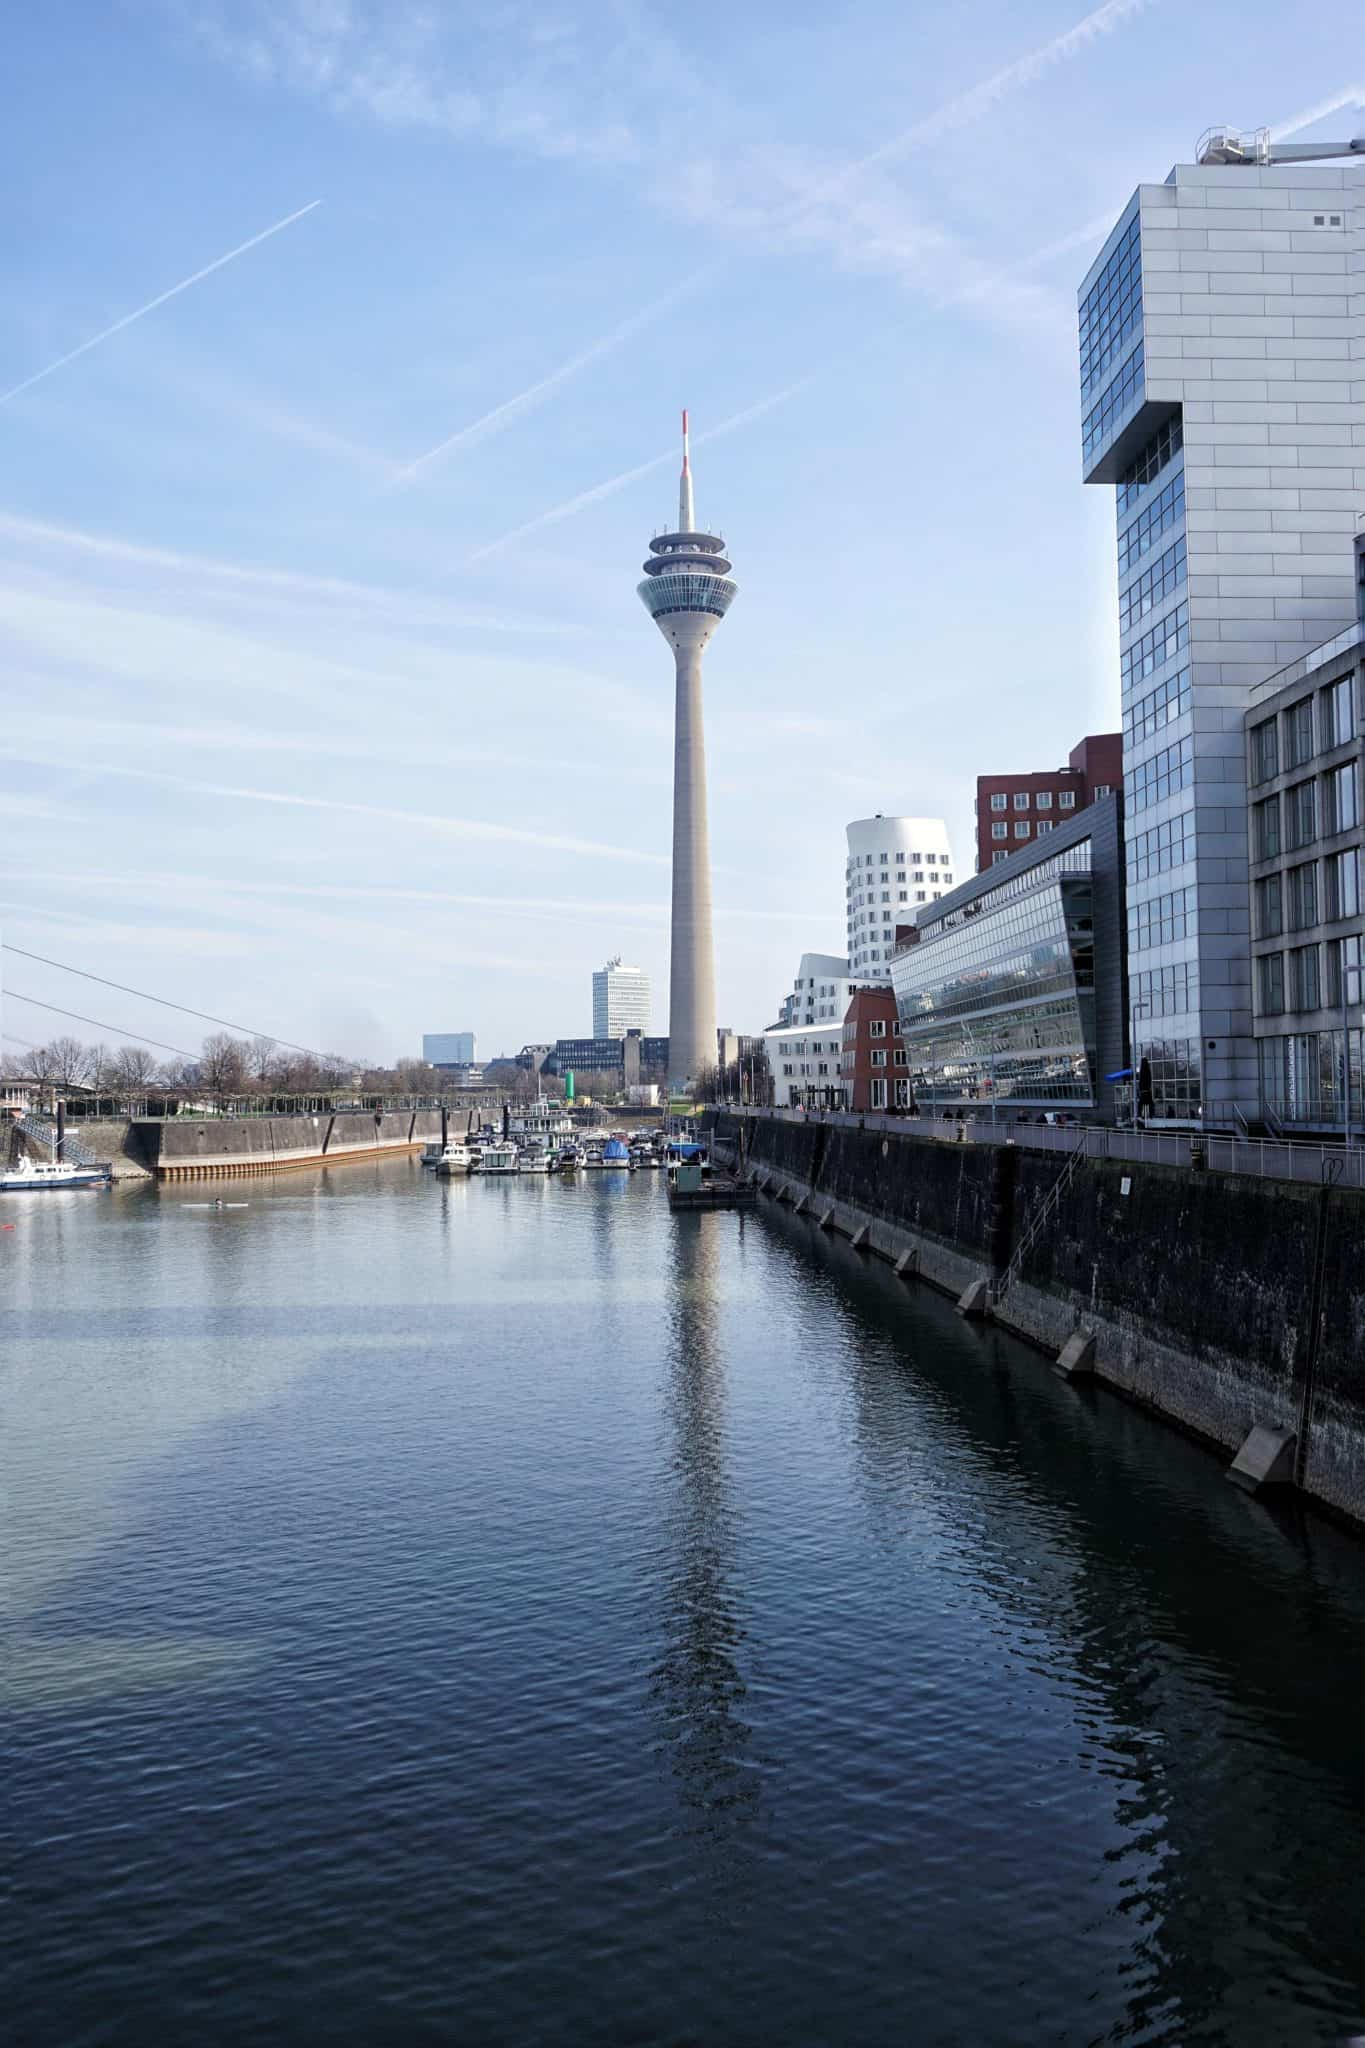 cycling in Düsseldorf: a guide to finding cycling cafés and places to cycle in the German city.